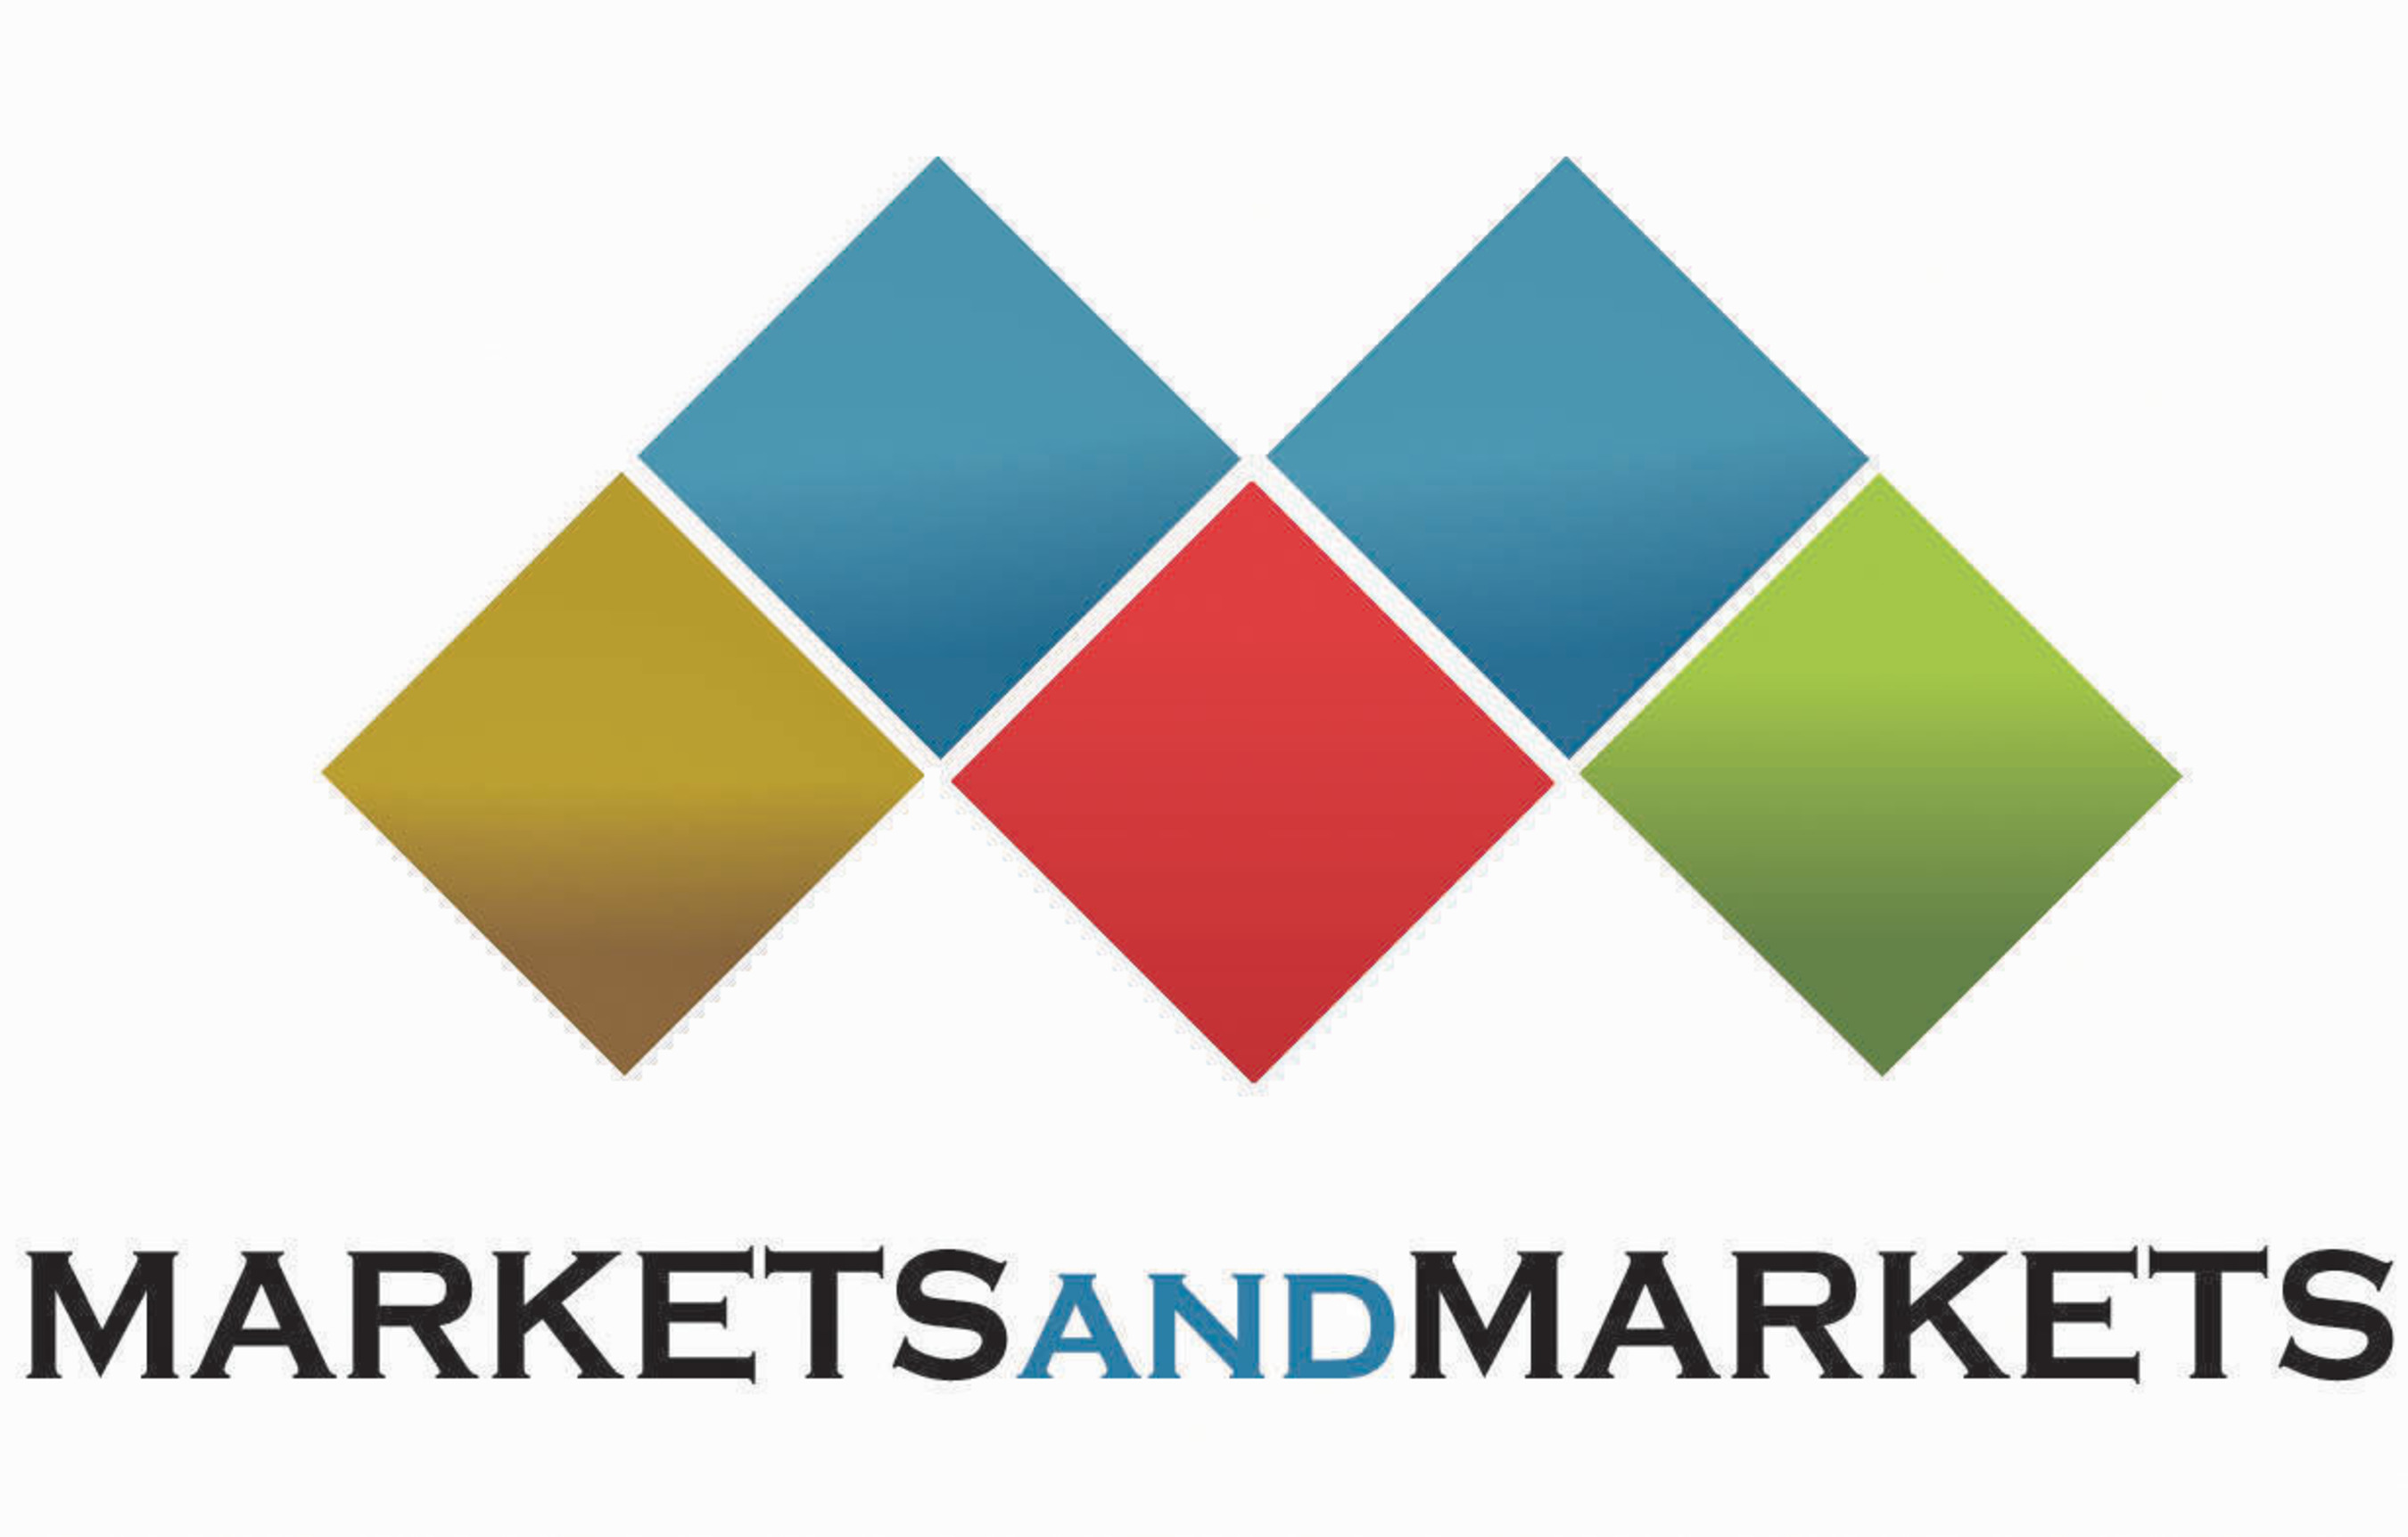 Optical Communication and Networking Market Worth 24.12 Billion USD by 2023